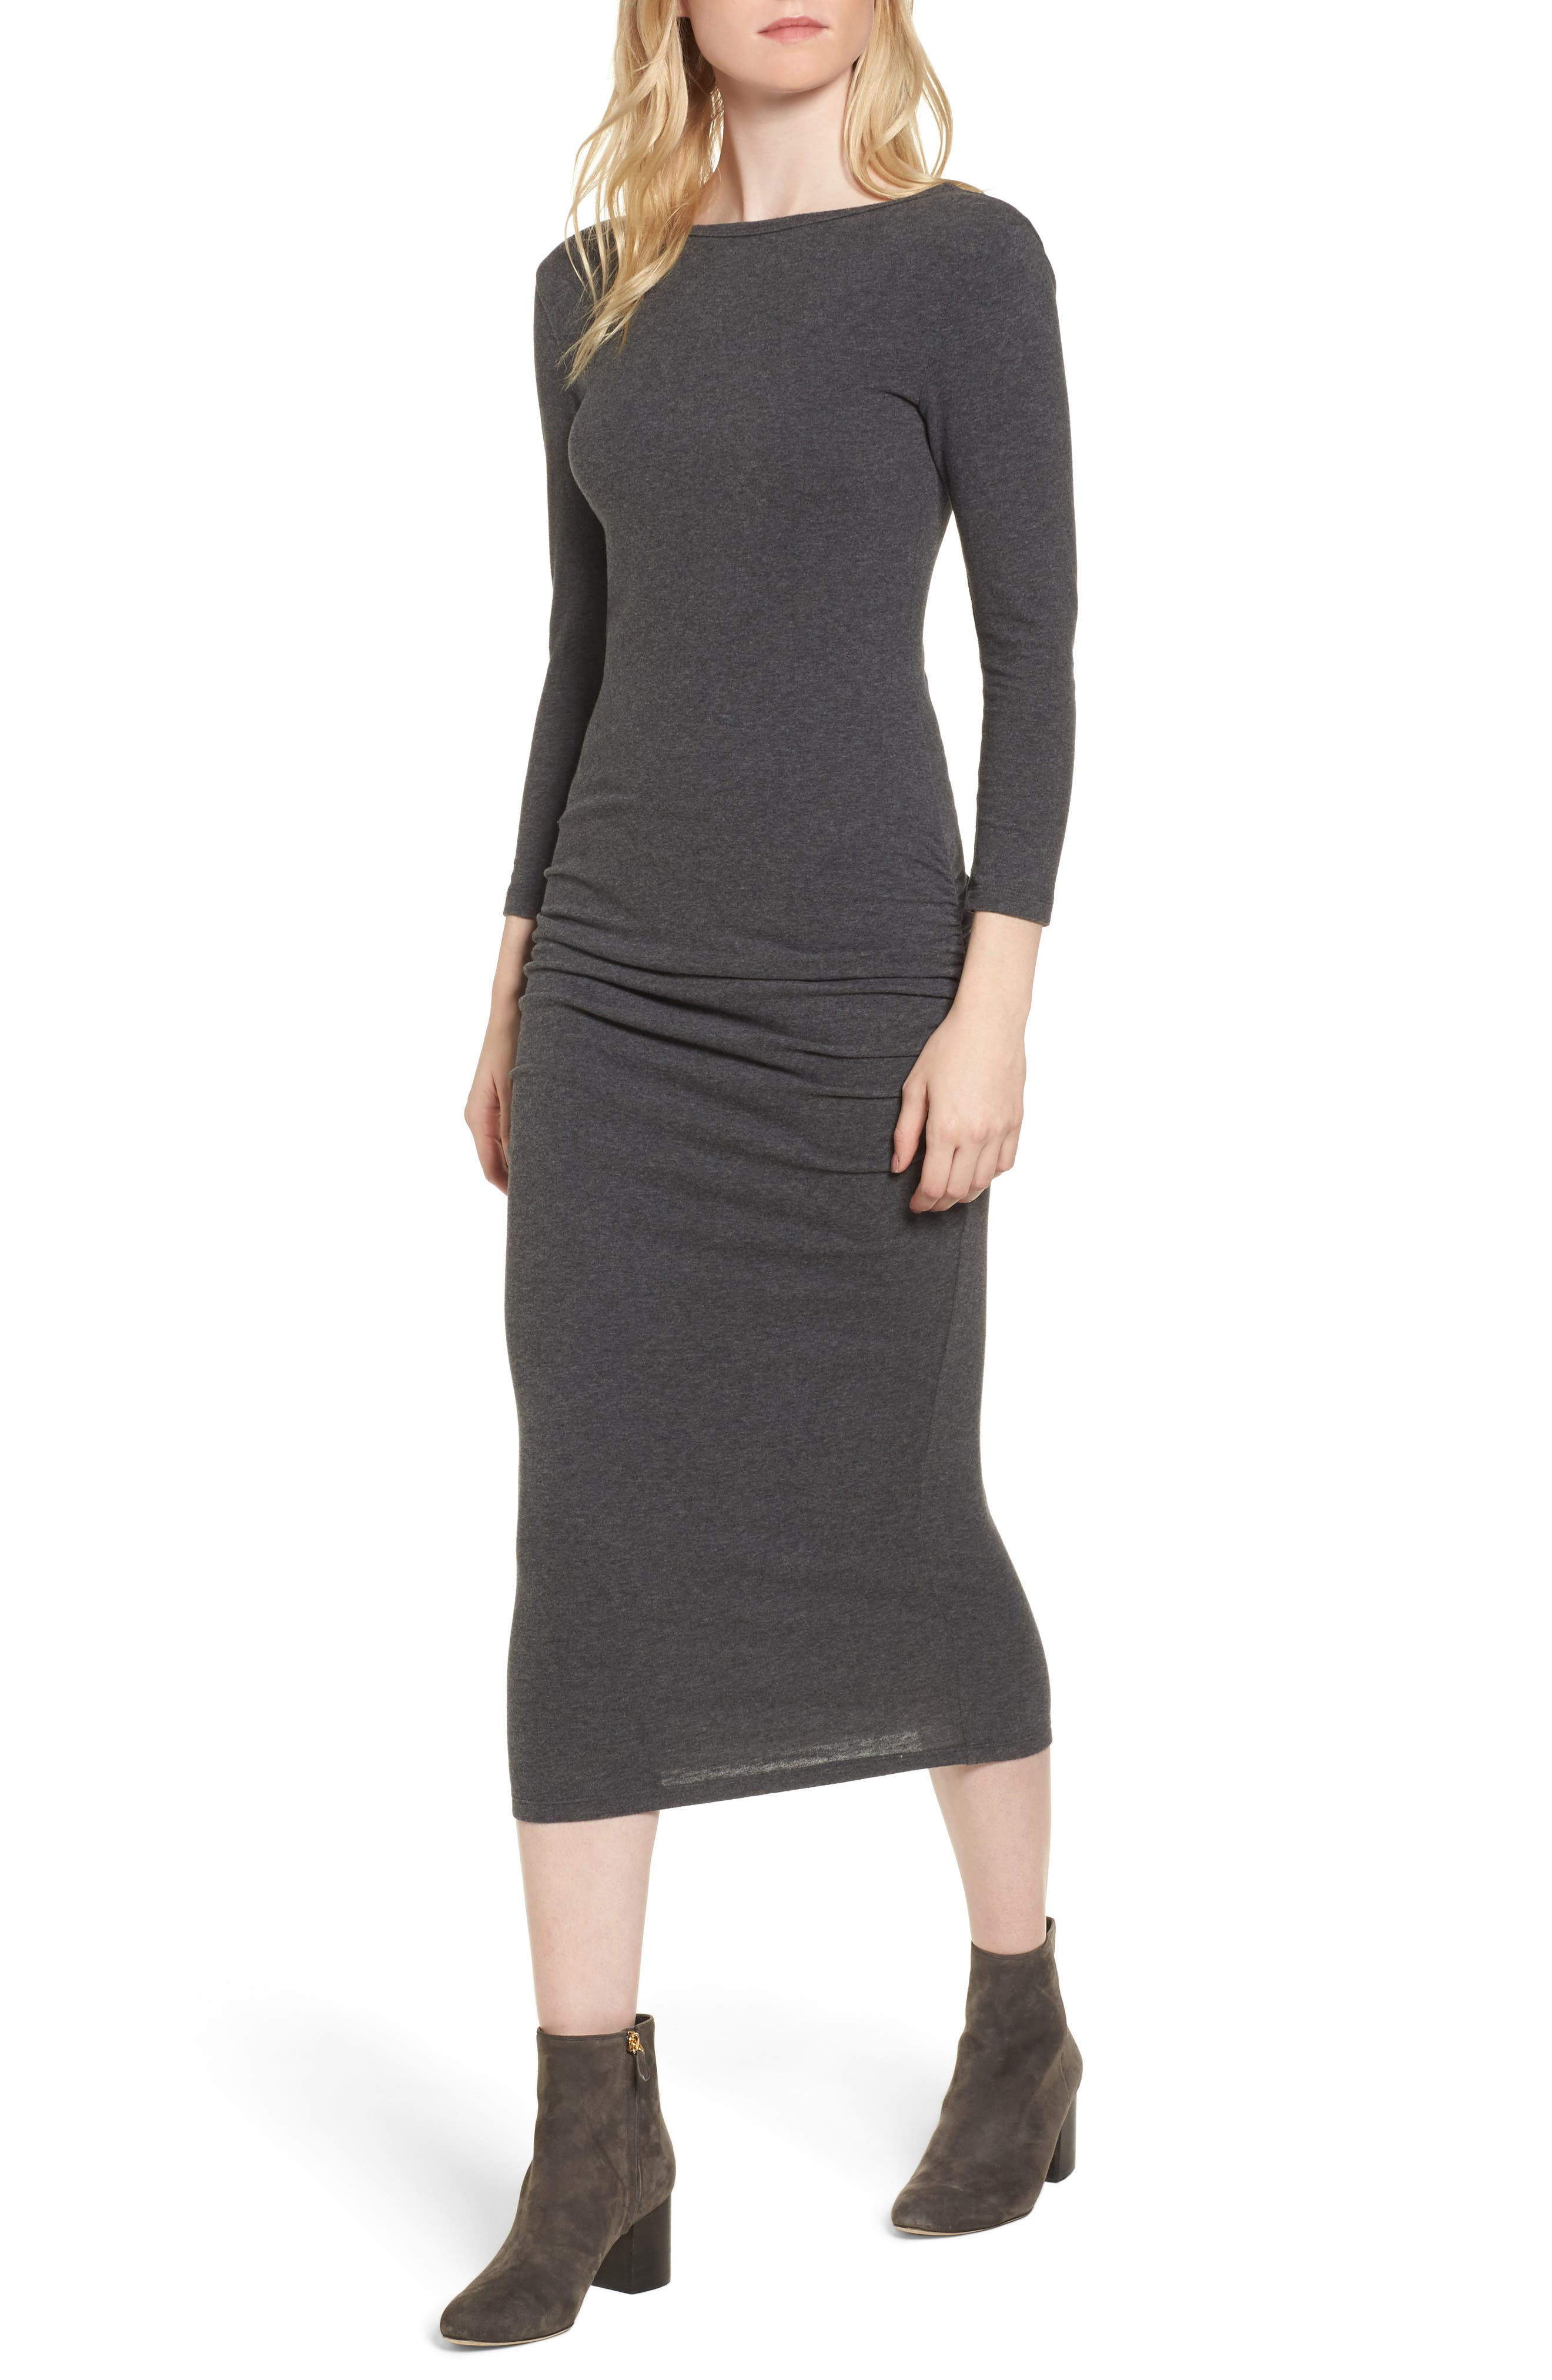 Main Image - James Perse Scoop Back Knit Dress